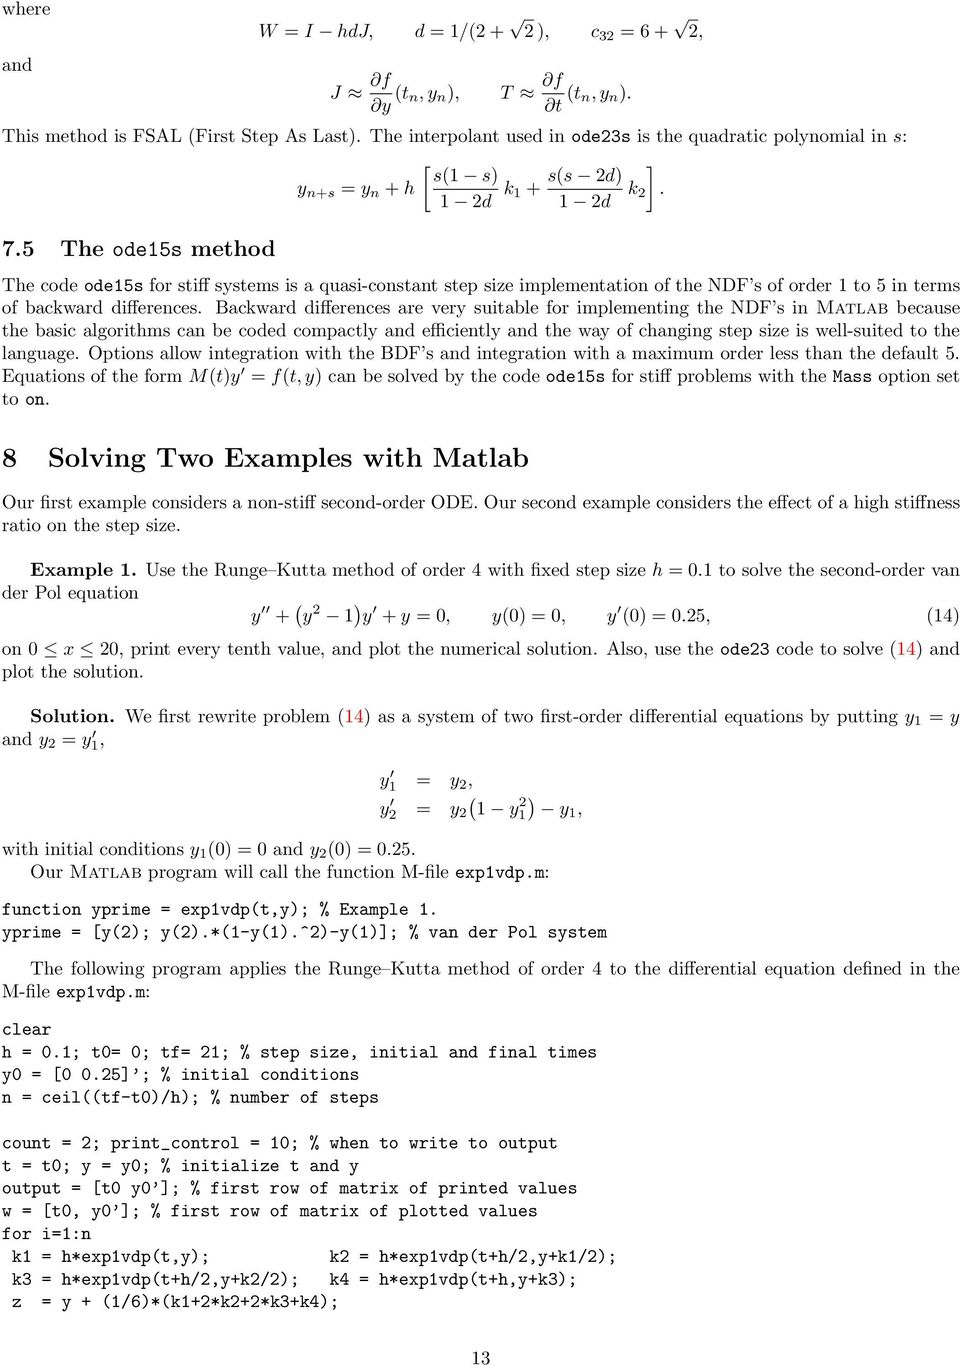 Behind and Beyond the MATLAB ODE Suite - PDF